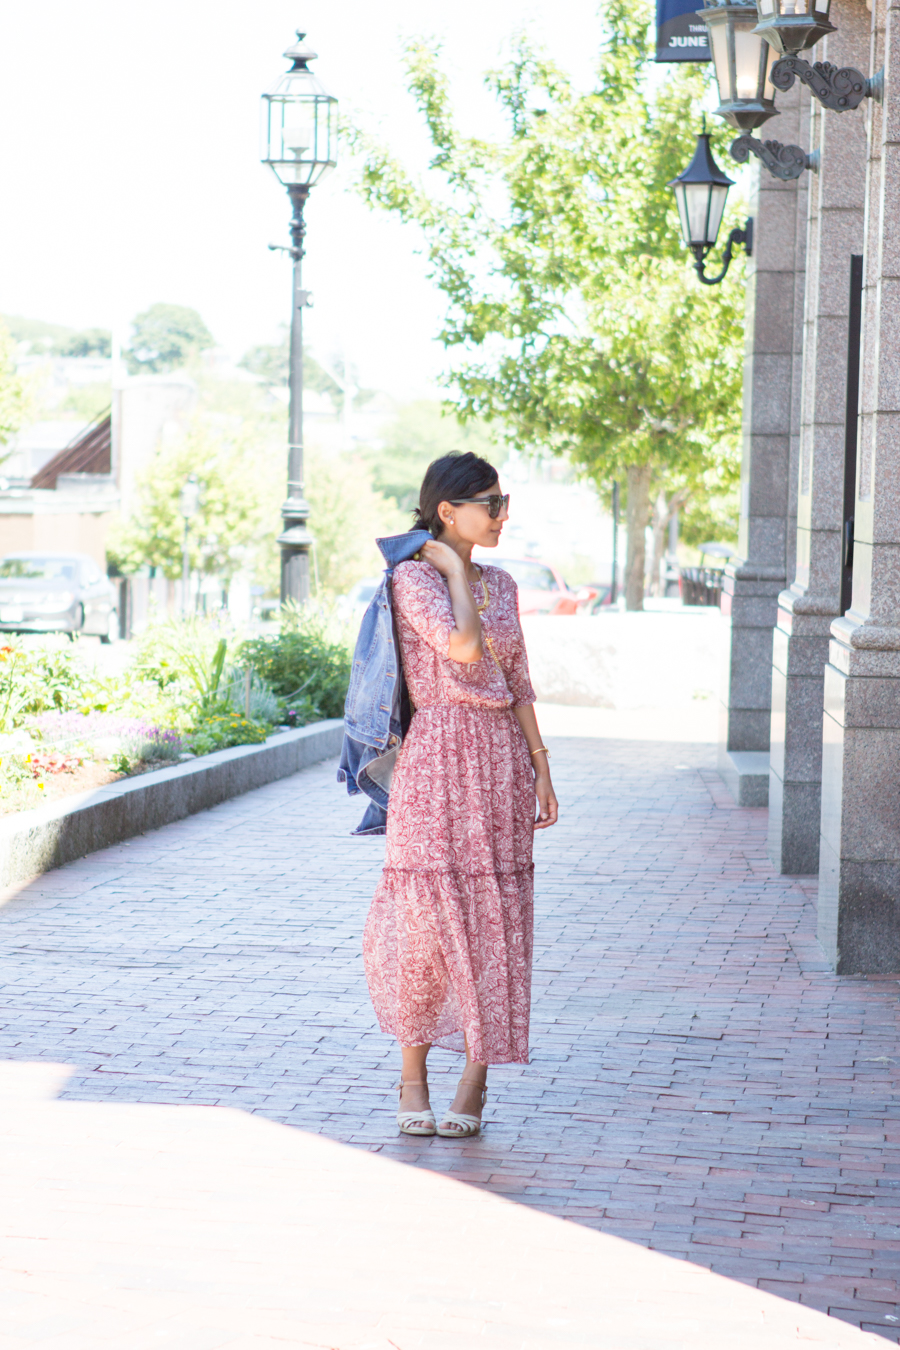 summer style, petite fashion, mididress, target style, who what wear, womenswear, lucky brand, madewell, petite blogger, personal style, weekend style